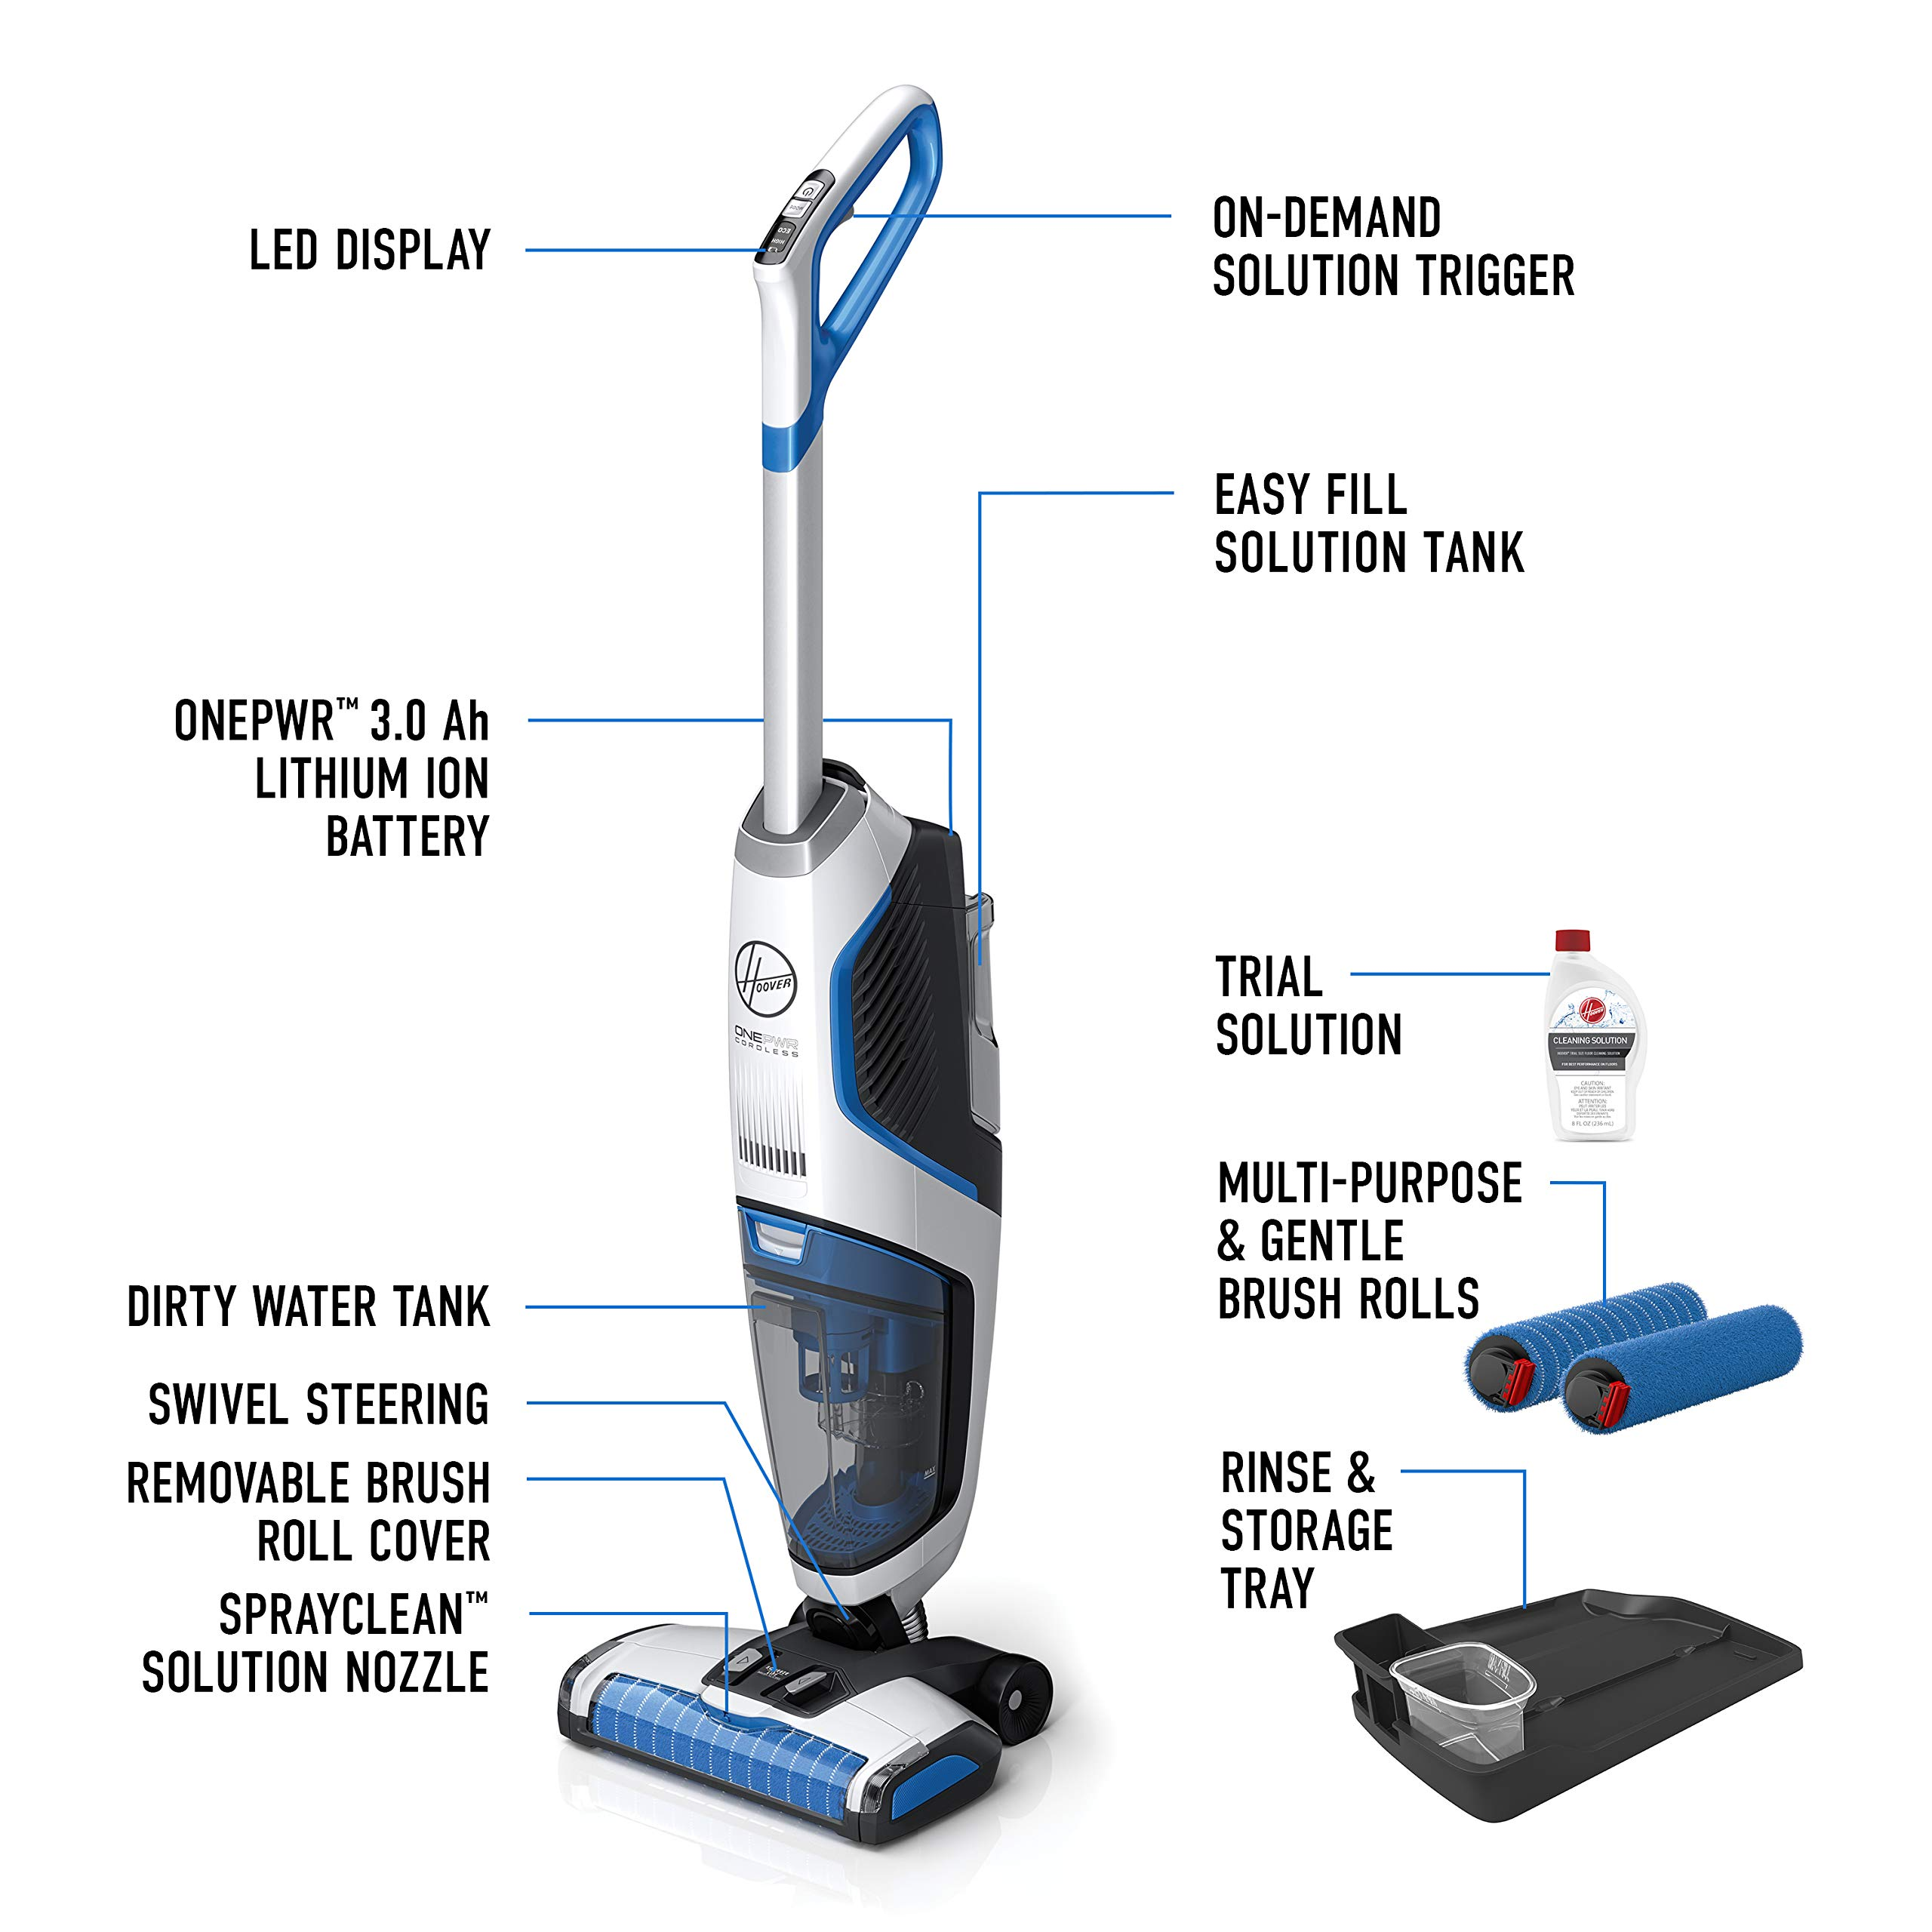 Hoover ONEPWR Cordless FloorMate Jet Hard Floor Cleaner, Wet Vacuum, BH55210, White by Hoover (Image #5)